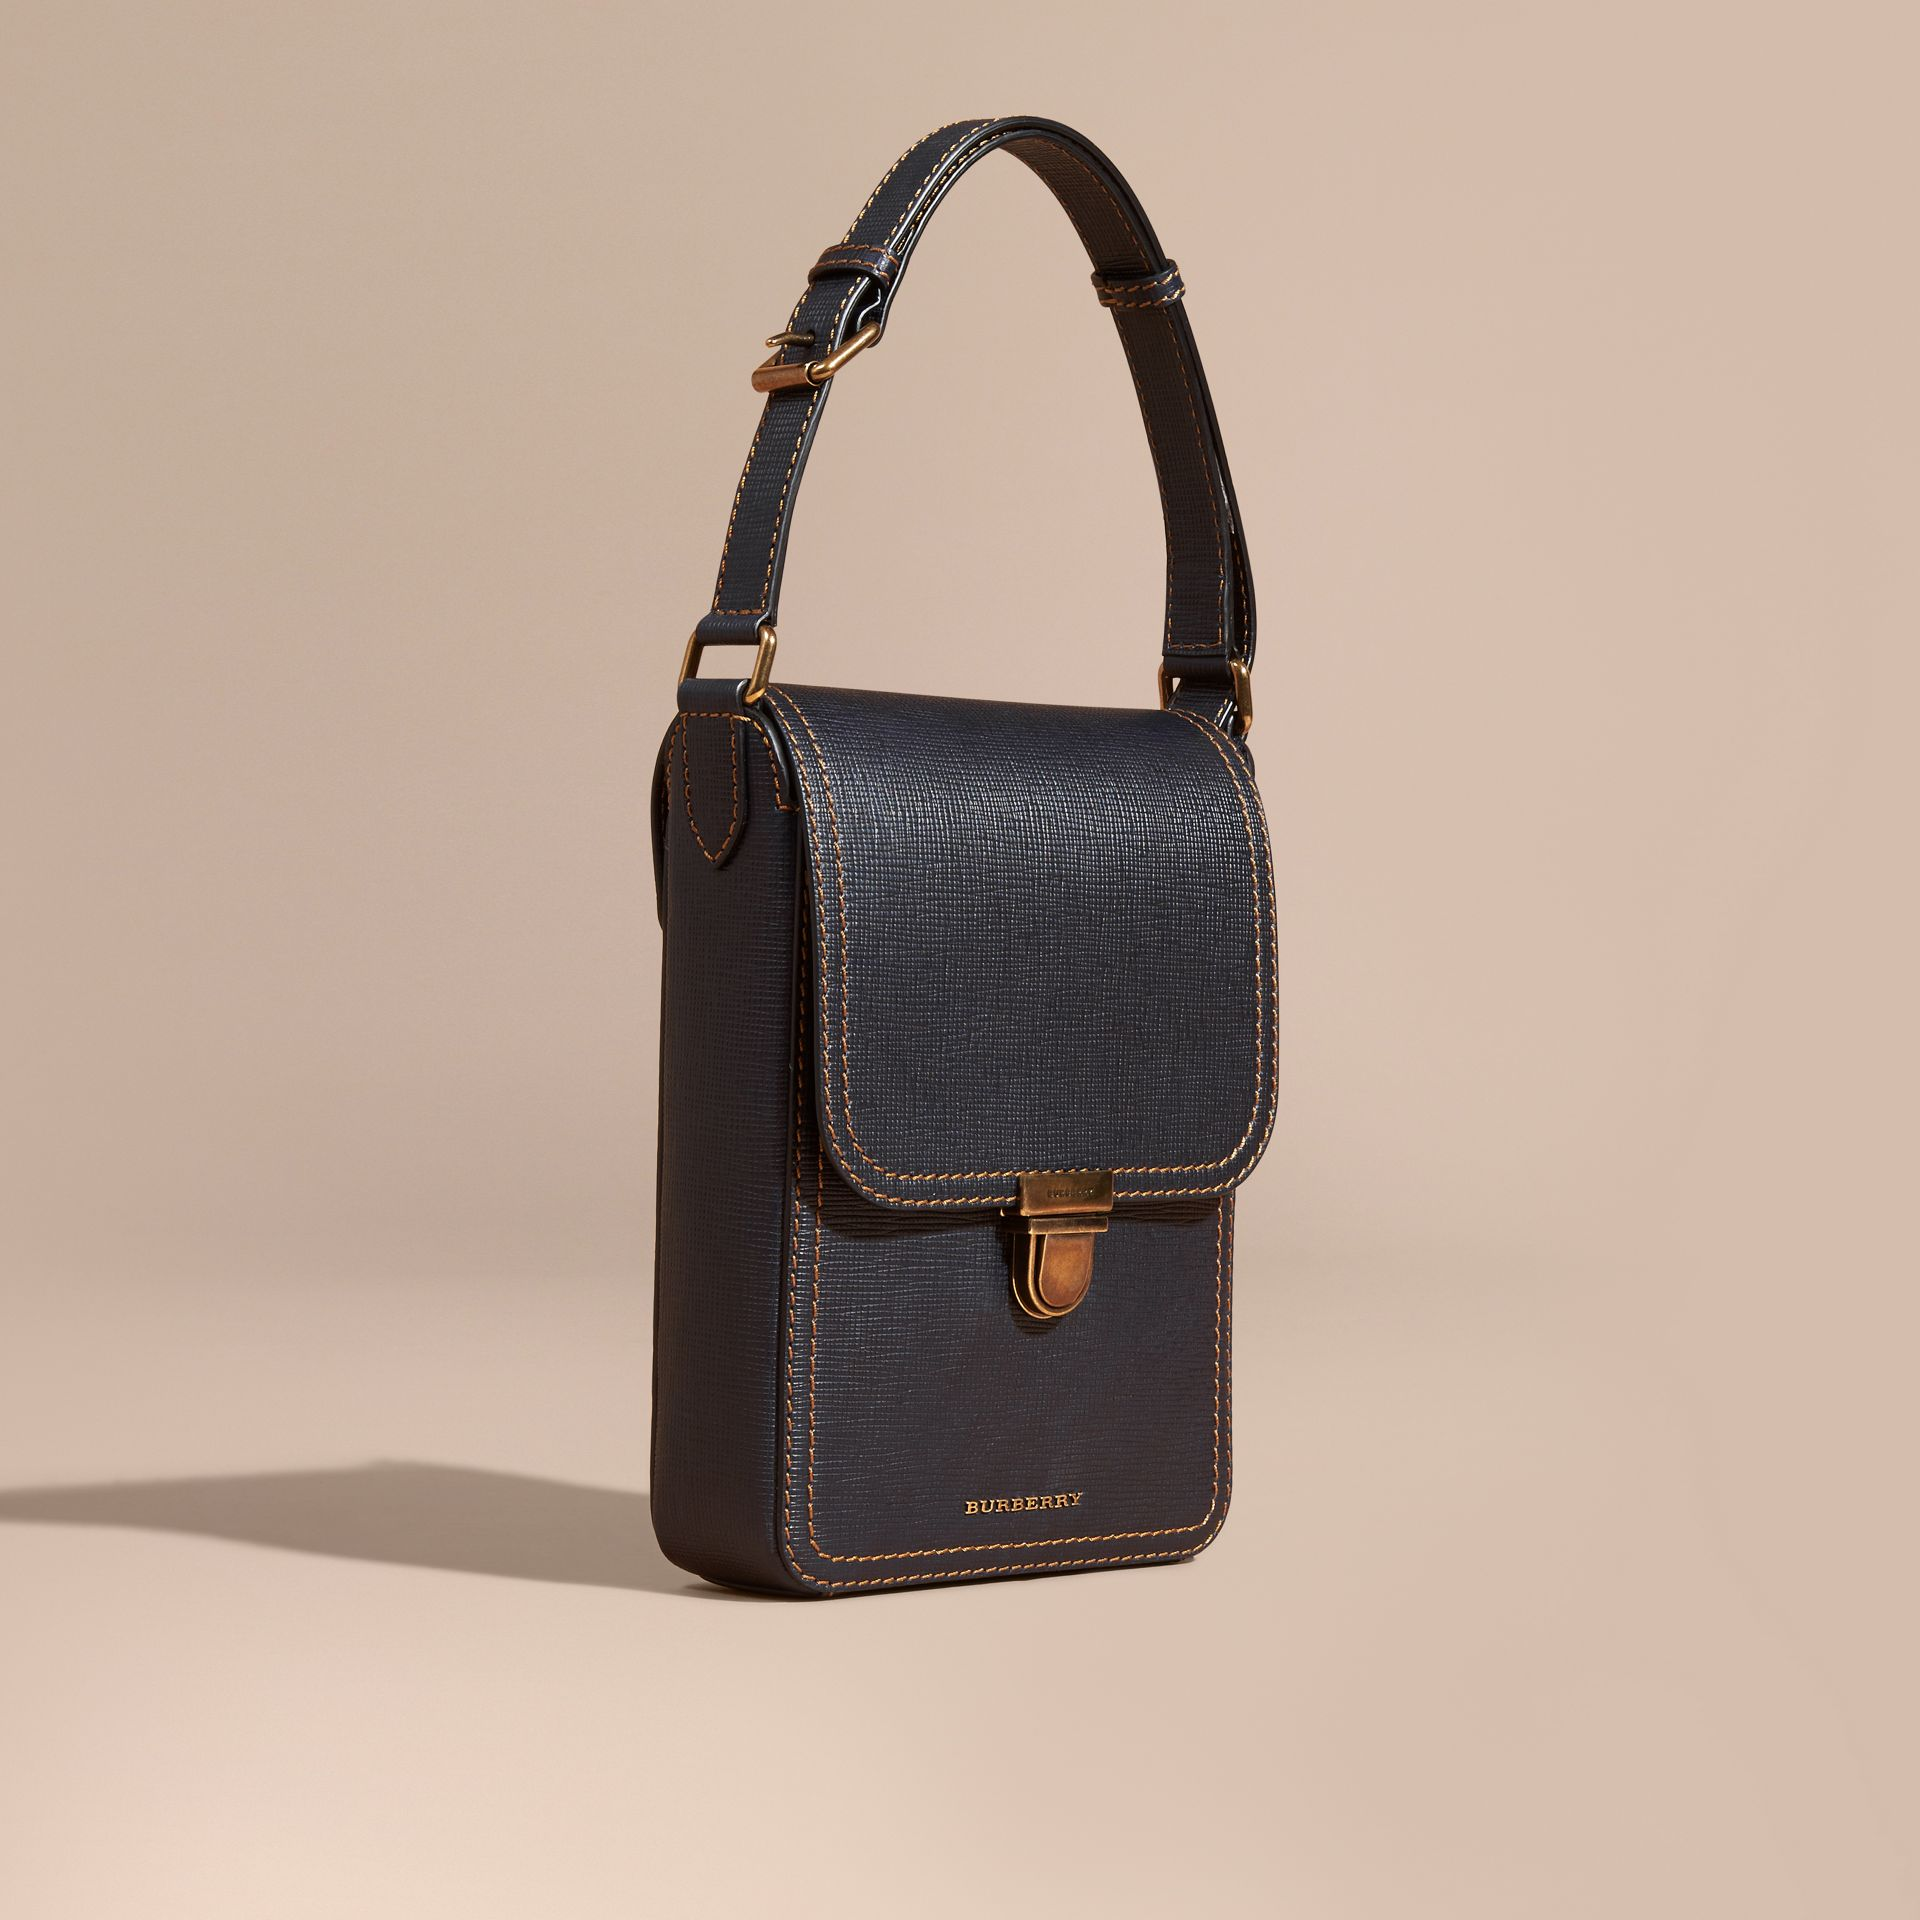 Dark navy The Small Satchel in Textured Leather - gallery image 1